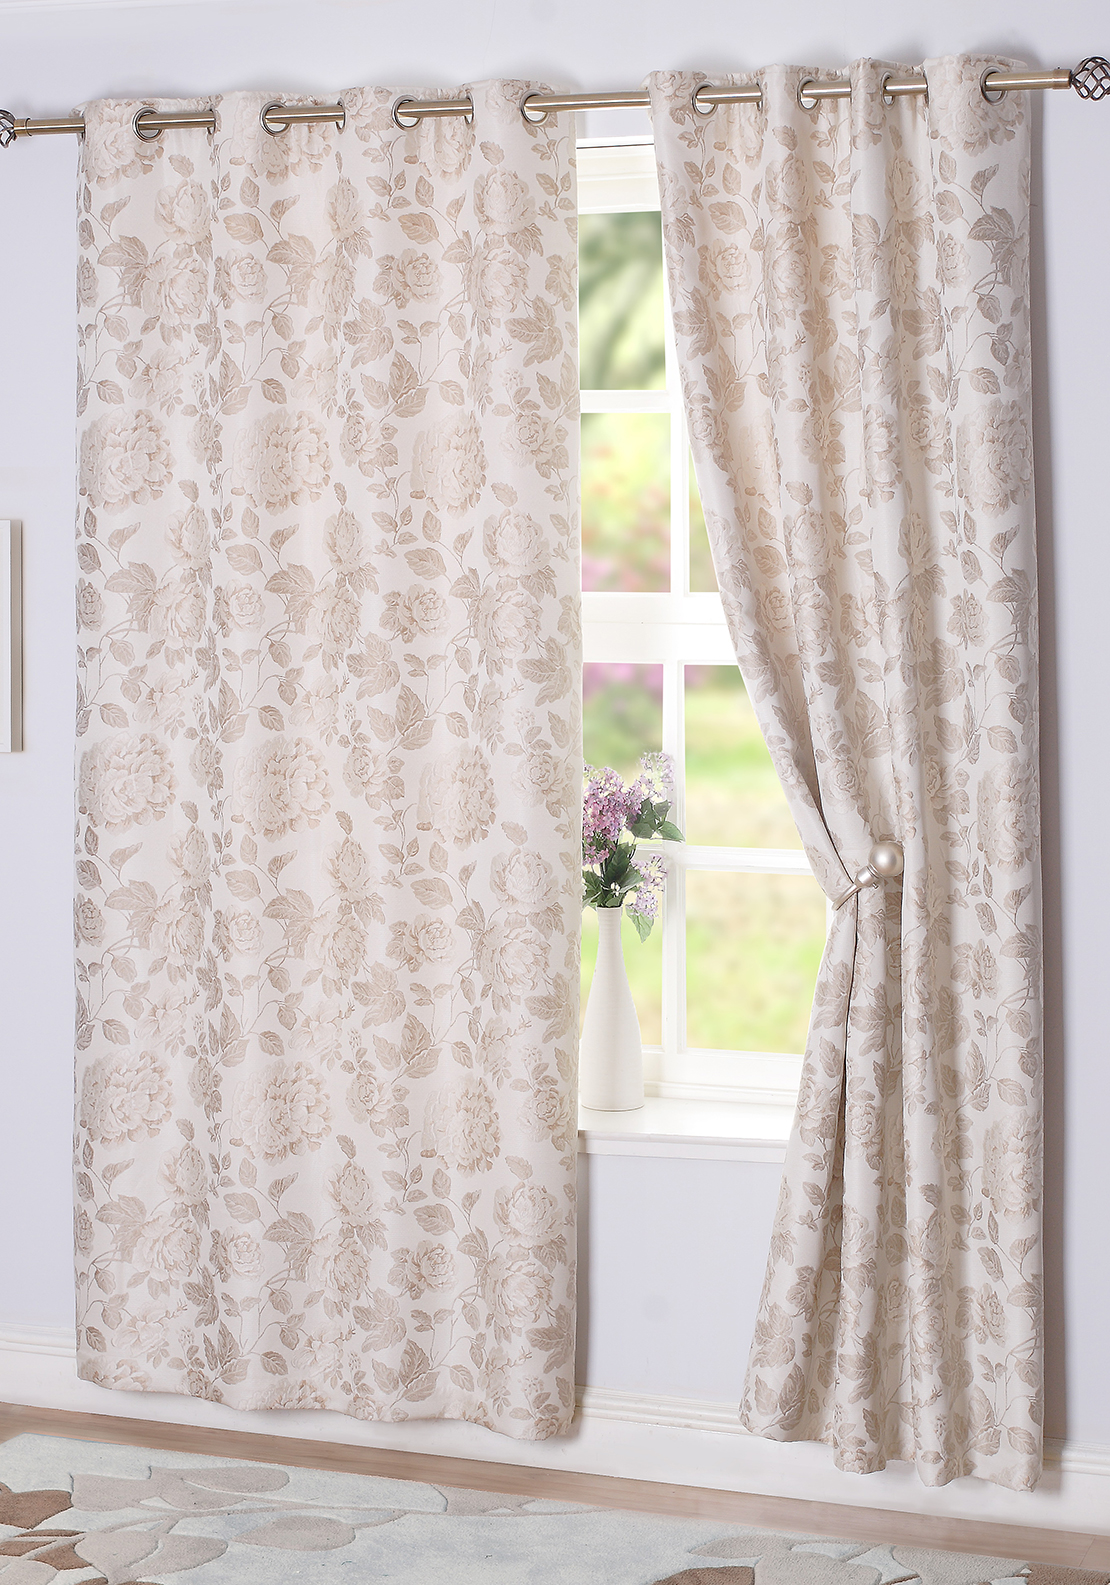 E.A. Delaney Belleville Eyelet Curtains, Natural Beige